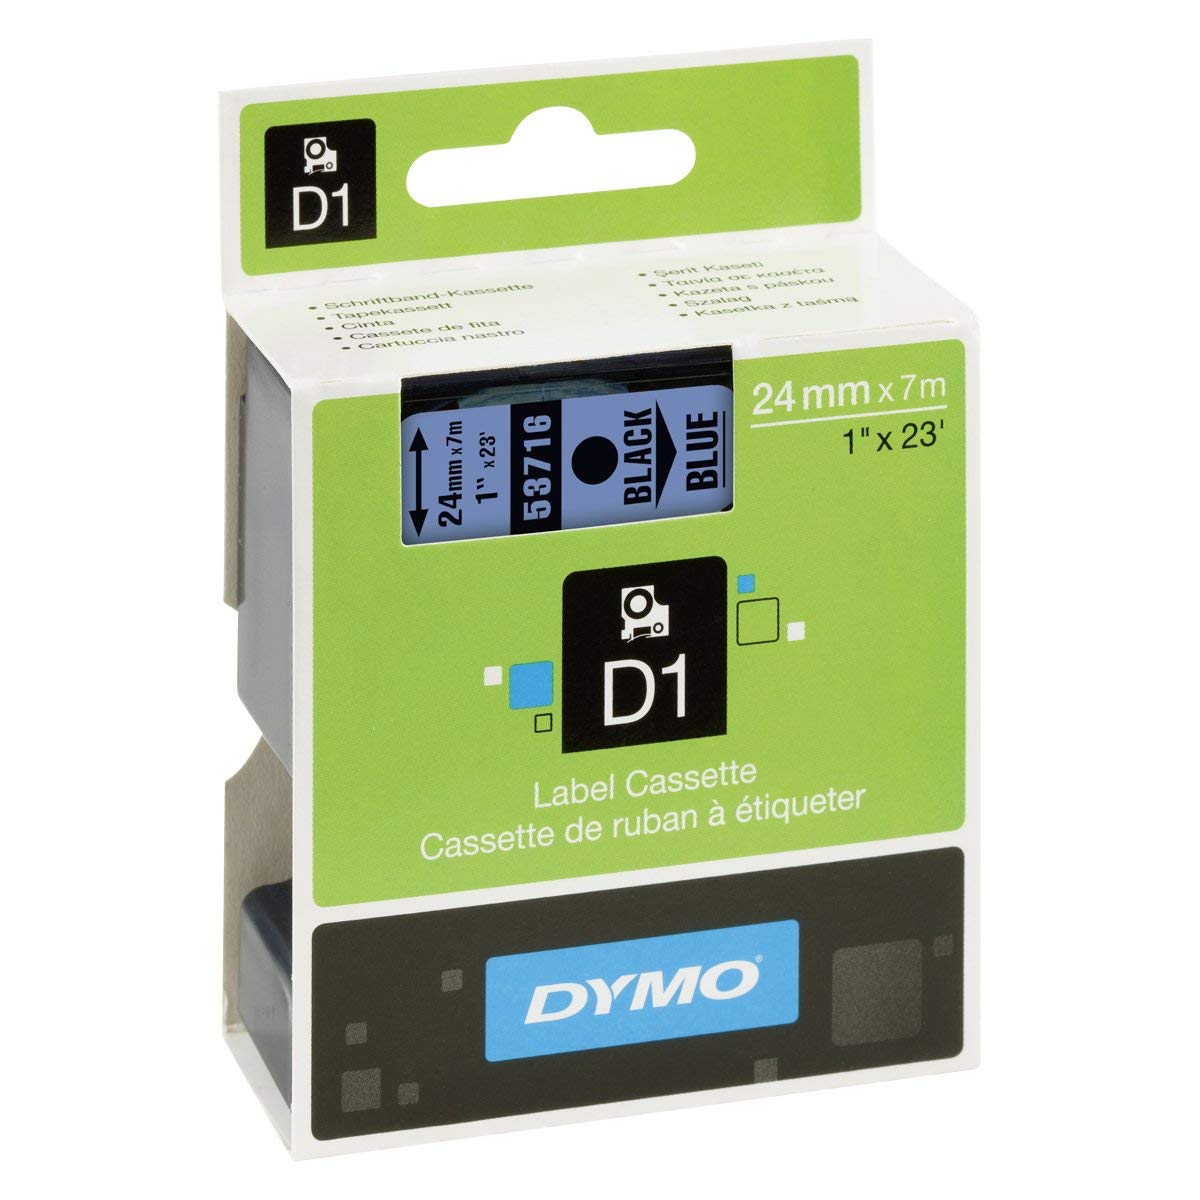 Dymo S0720960 (53716) D1 Label Tape 24mm x 7m - Black on Blue (pc)